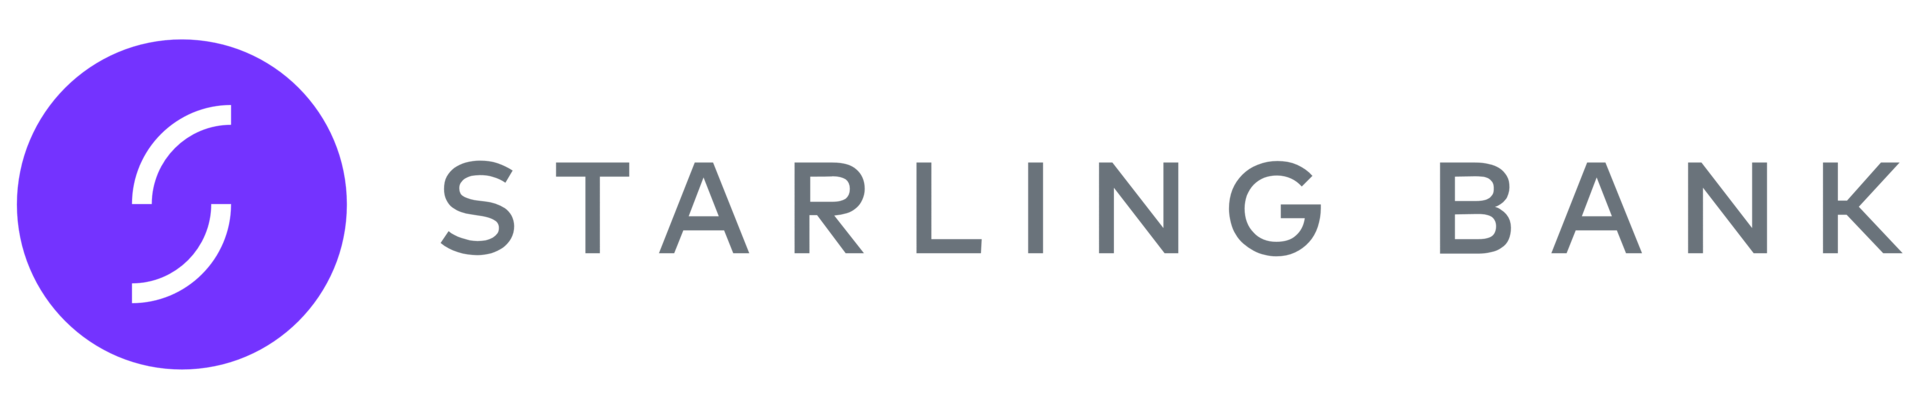 Zendesk Starling Bank Case Study